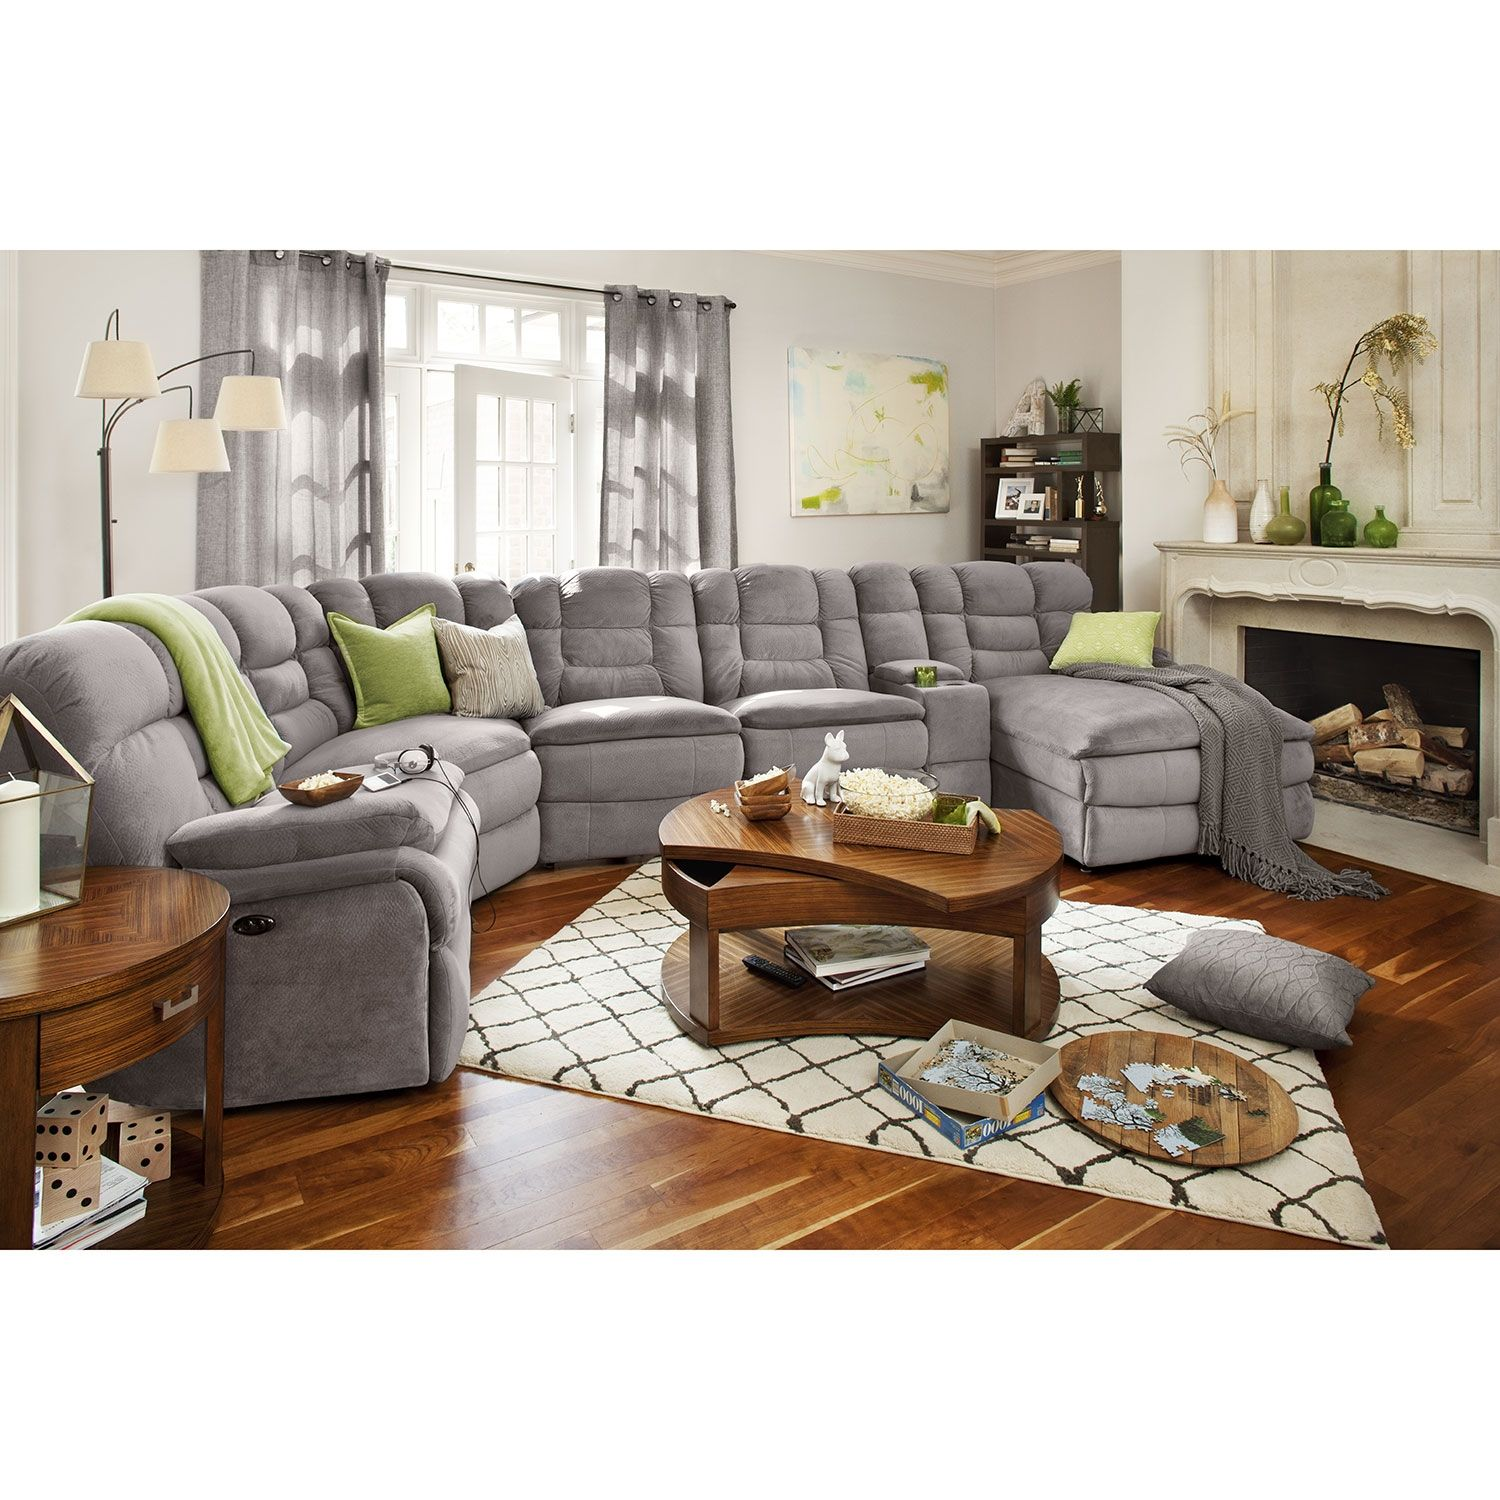 Big Softie 6Piece Power Reclining Sectional with Chaise